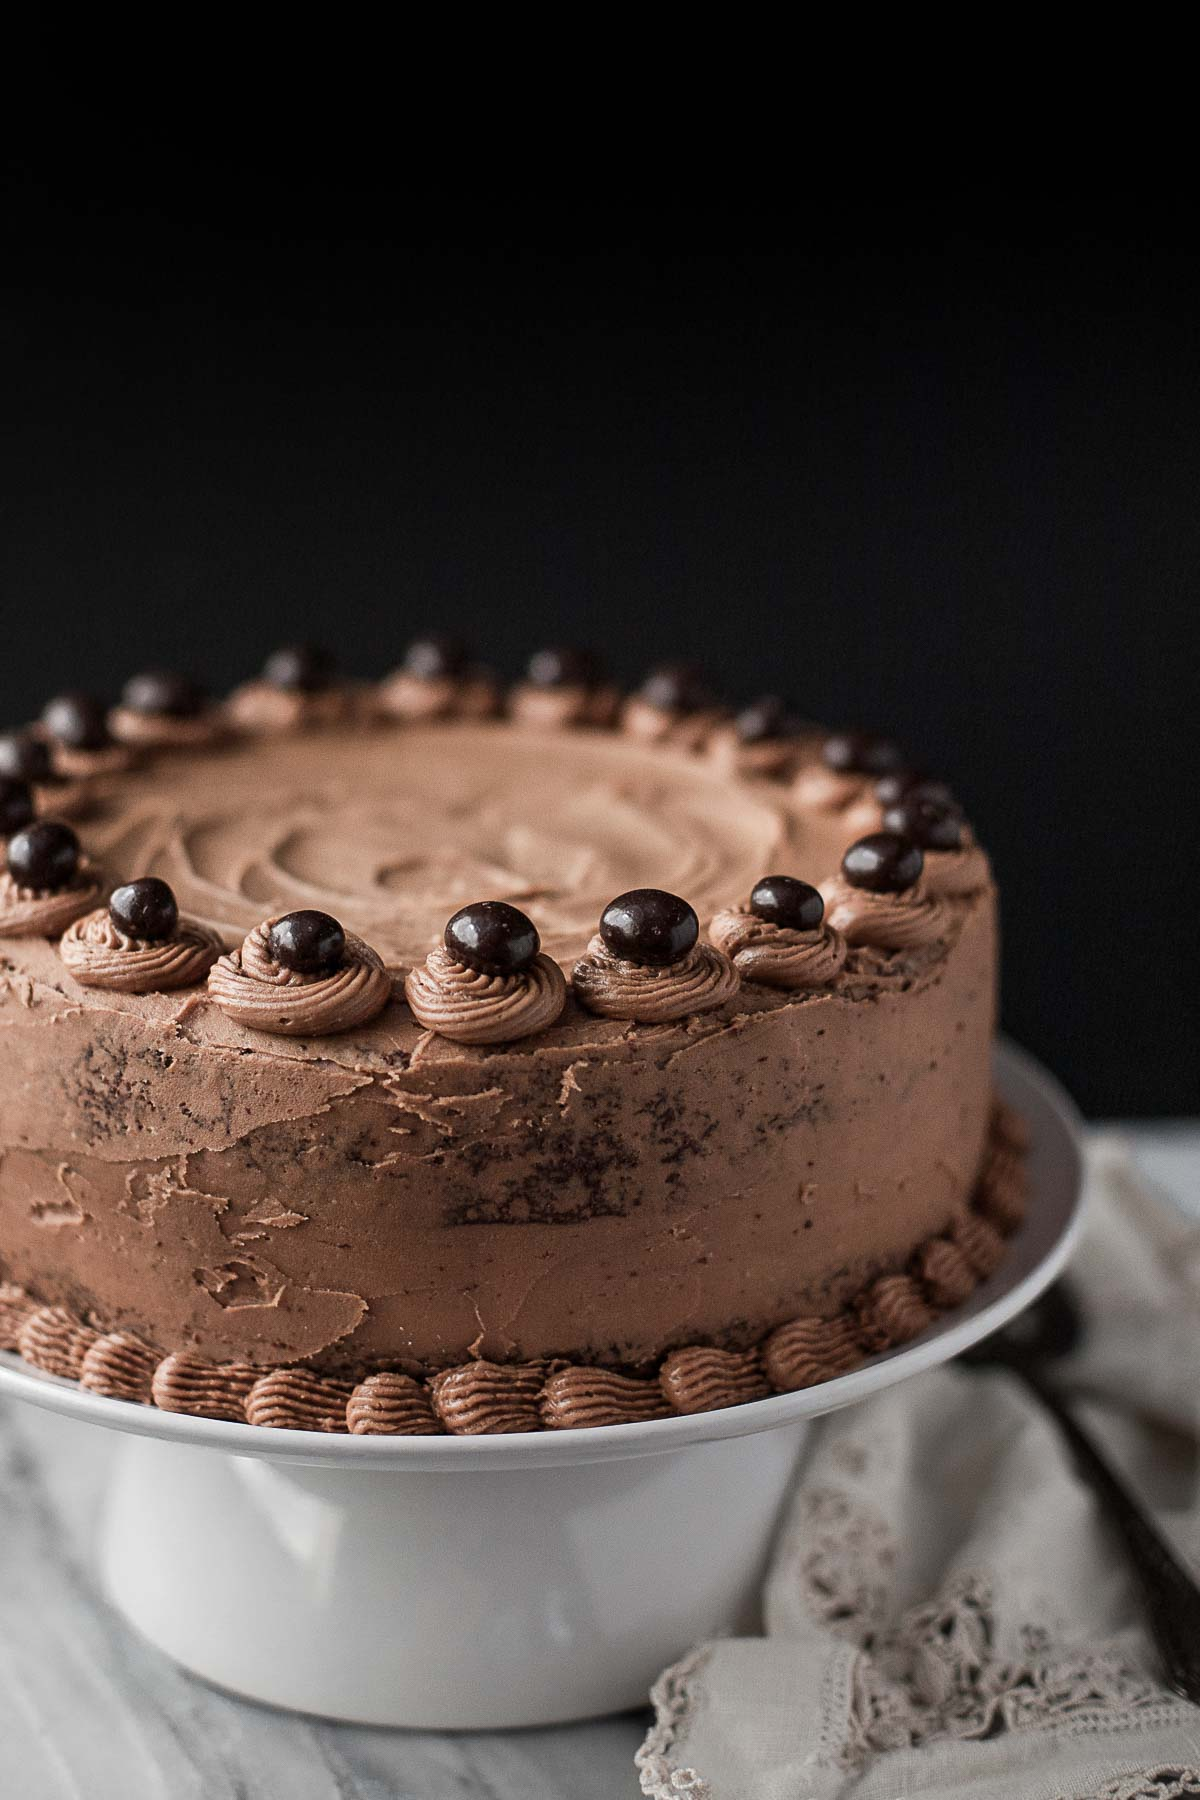 Grain-free Chocolate Cake with Mocha Buttercream